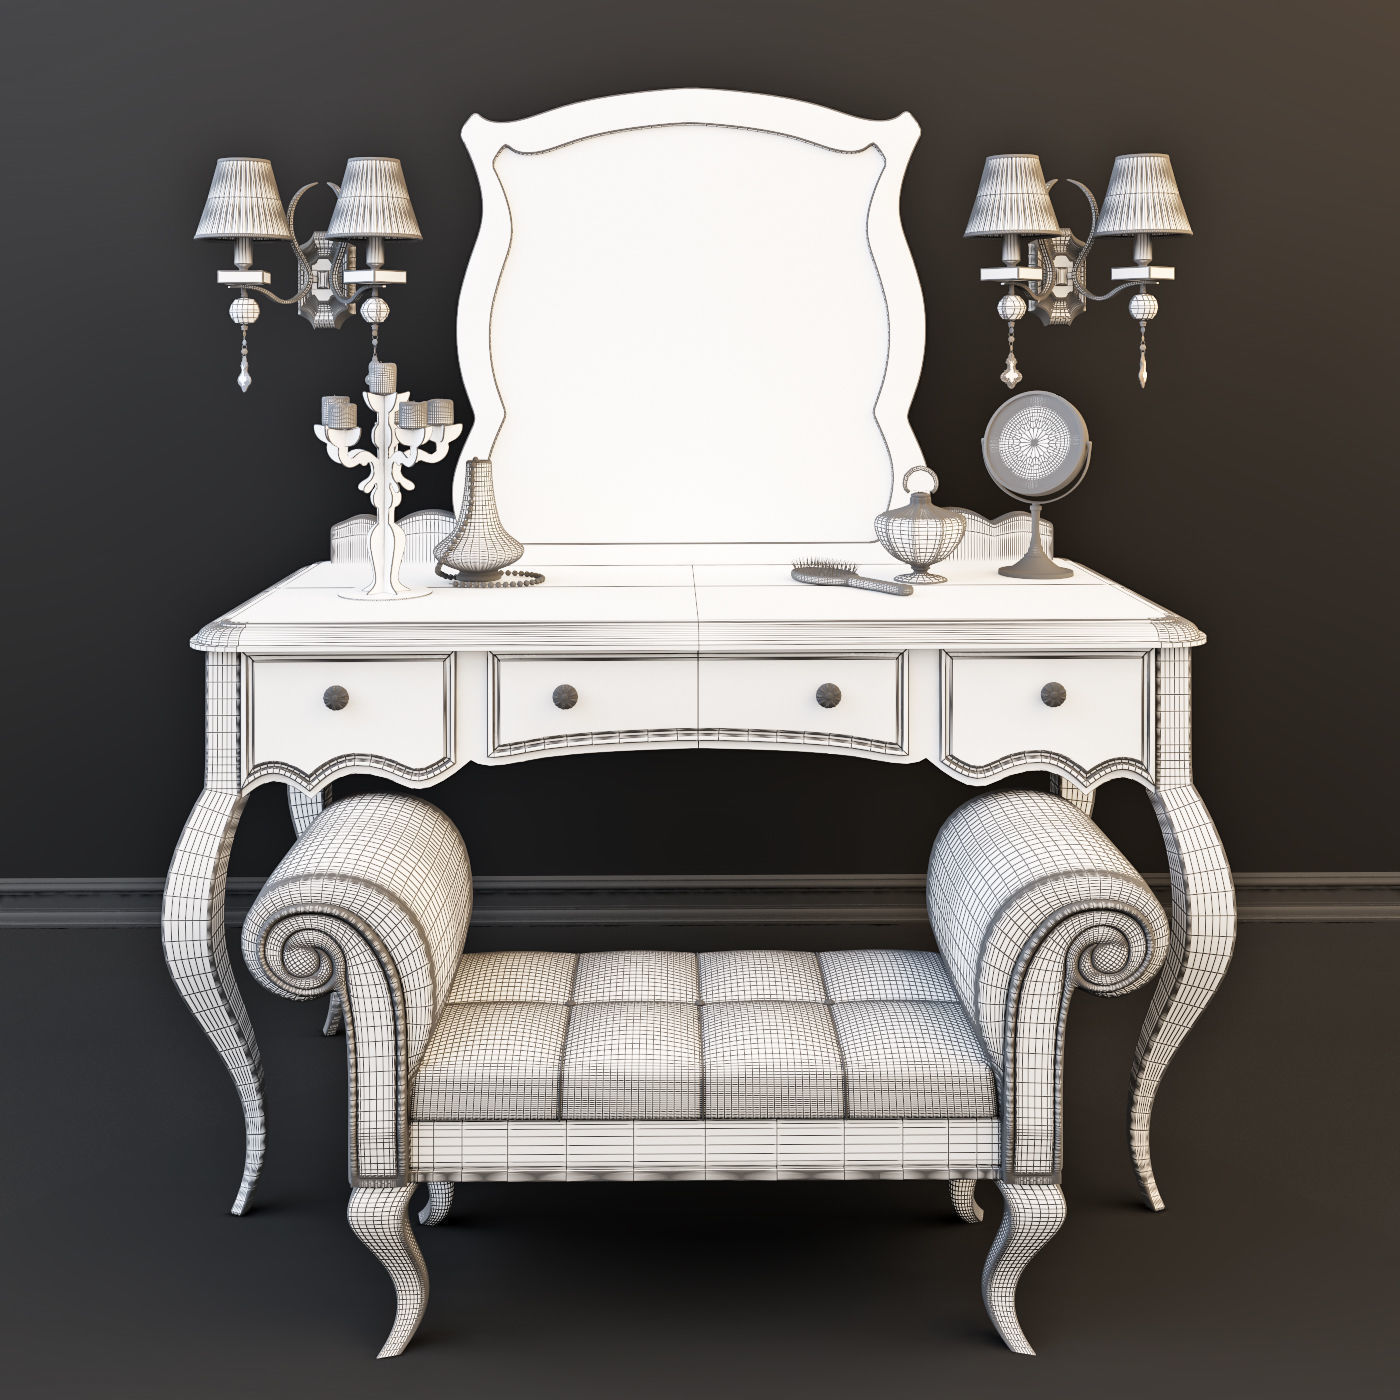 Cosmetic Table Cosmetic Table With Decor 3d Model